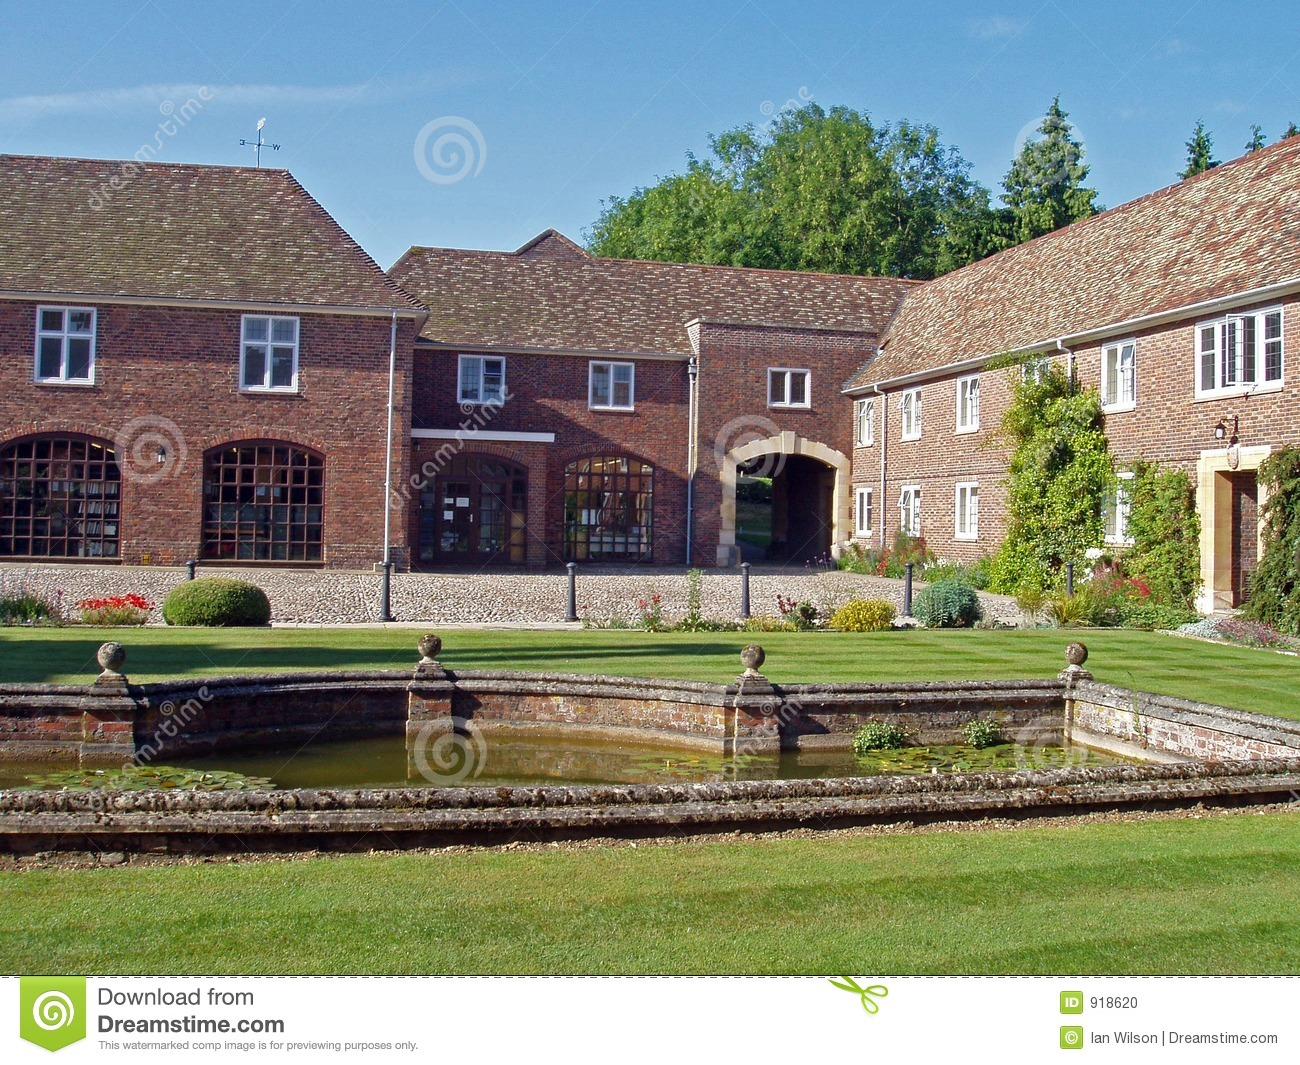 Maison de campagne anglaise photo stock image 918620 - Photo maison anglaise ...